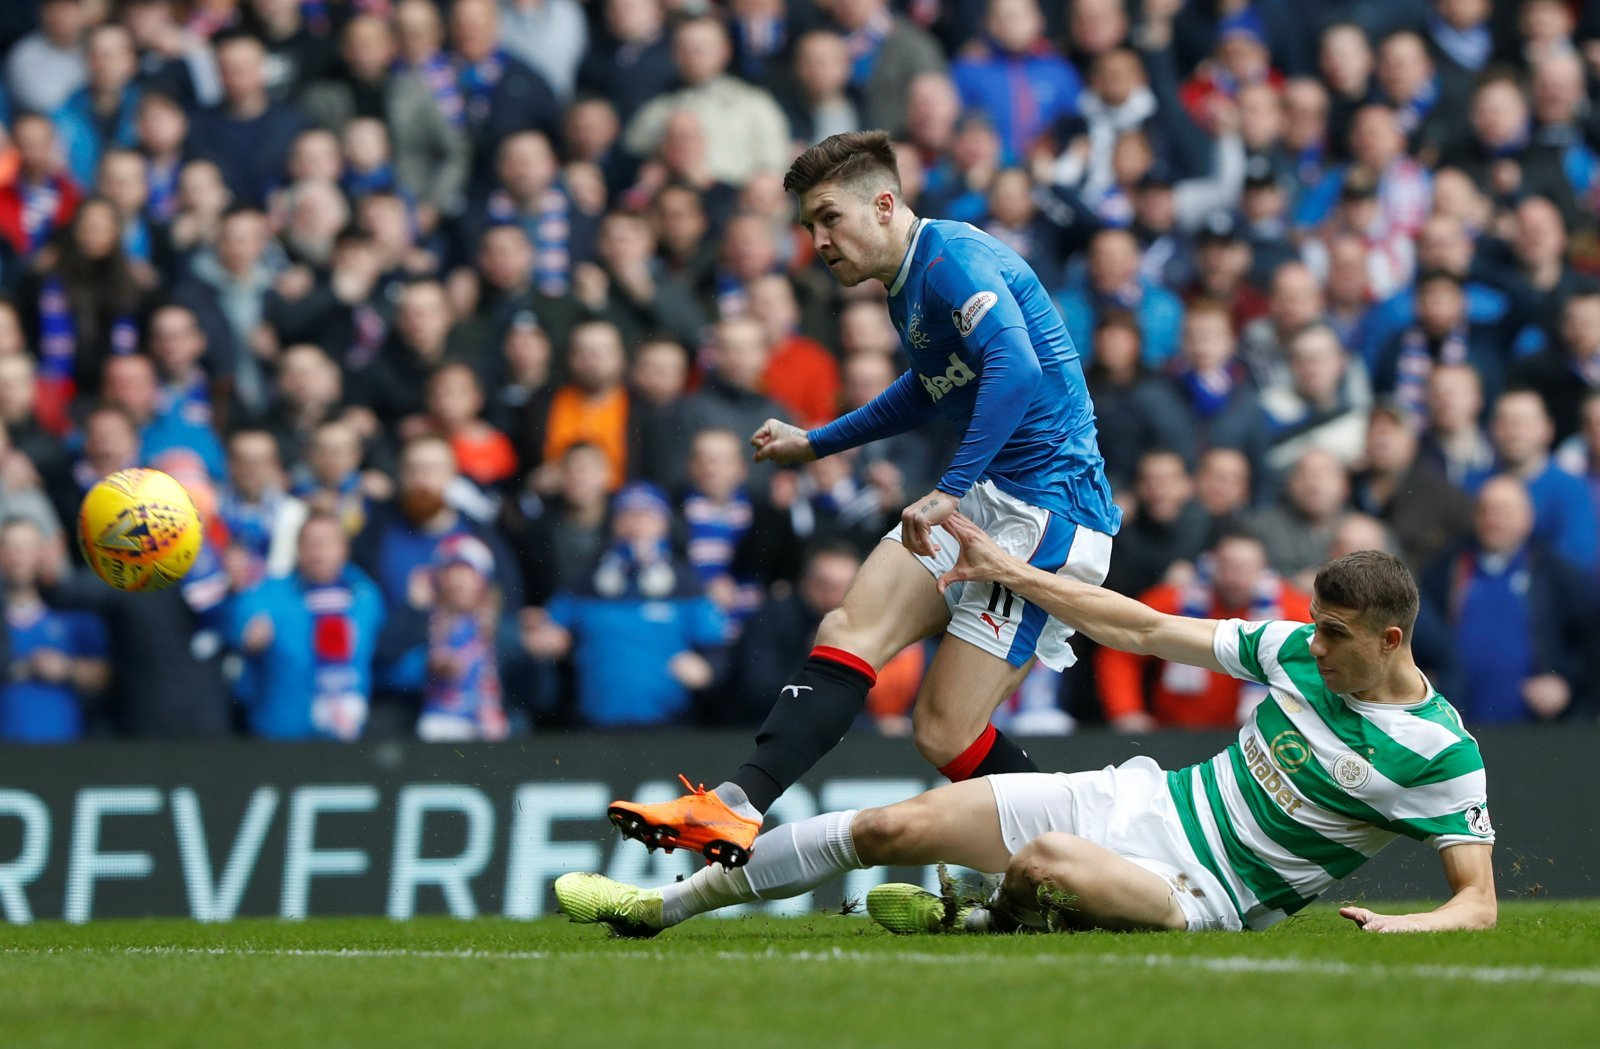 Josh Windass is spot on: Rangers should have got more than £2.5m for his services